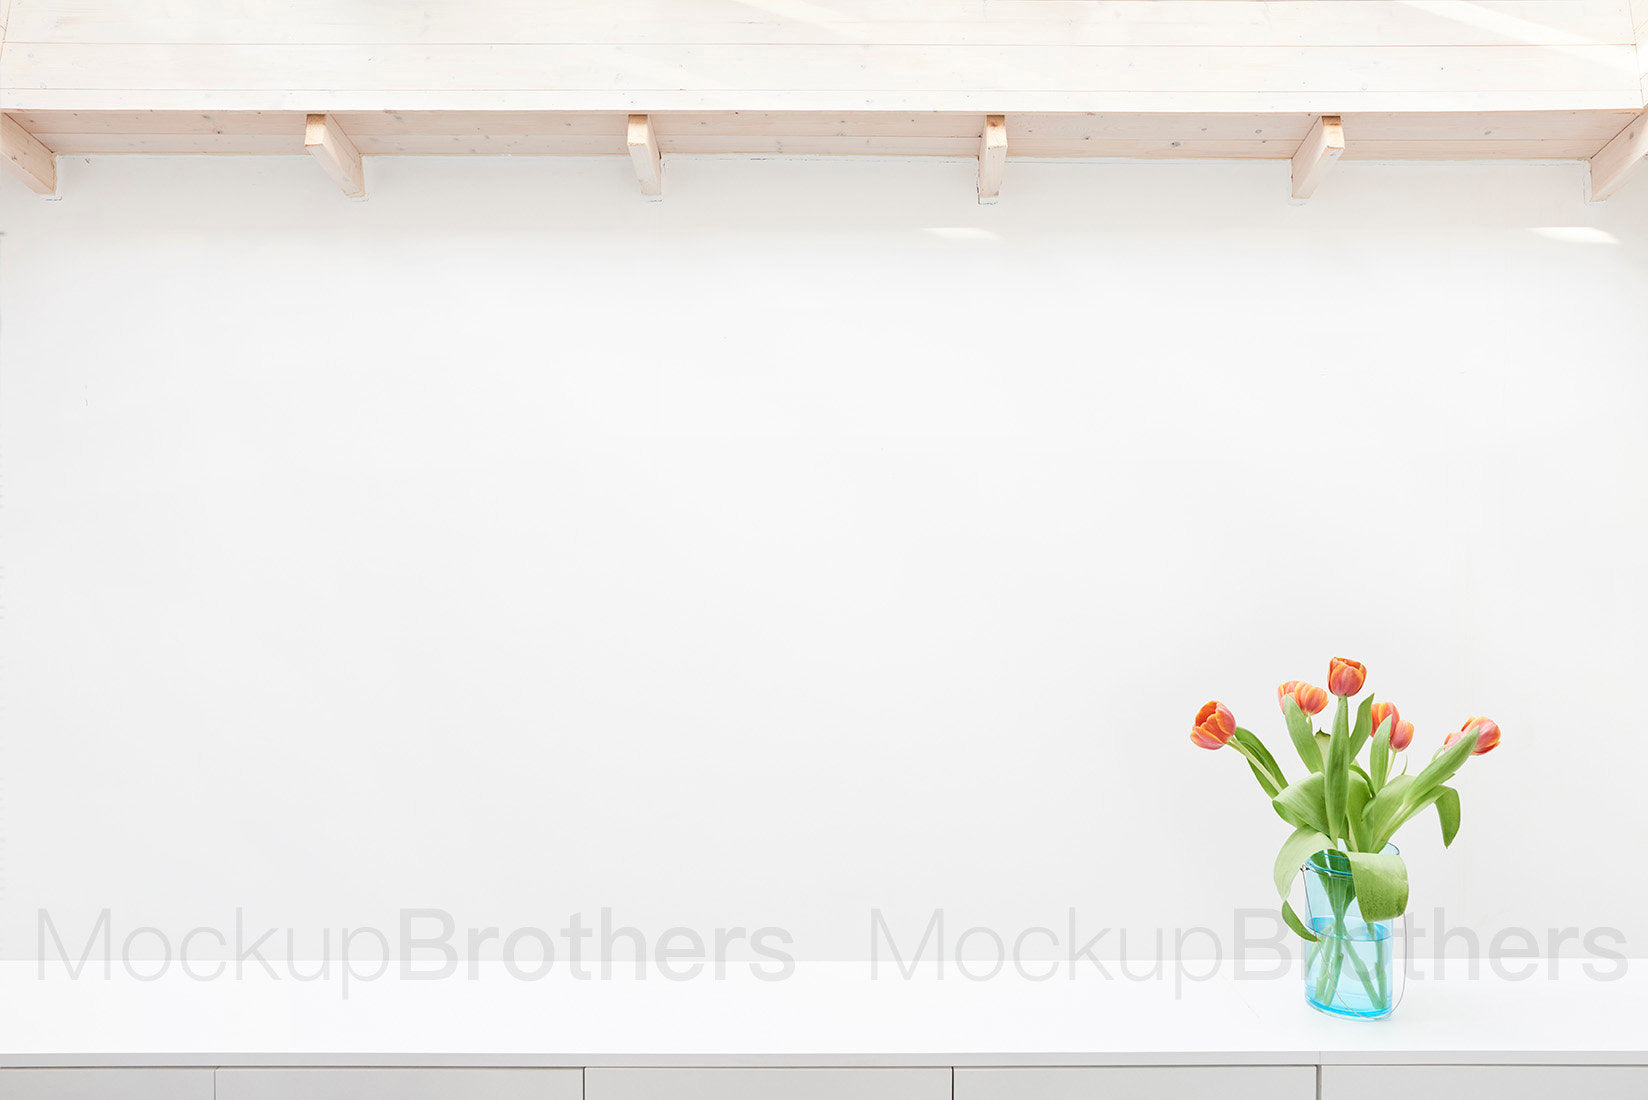 Wall mockup for large paintings with tulips by MockupBrothers